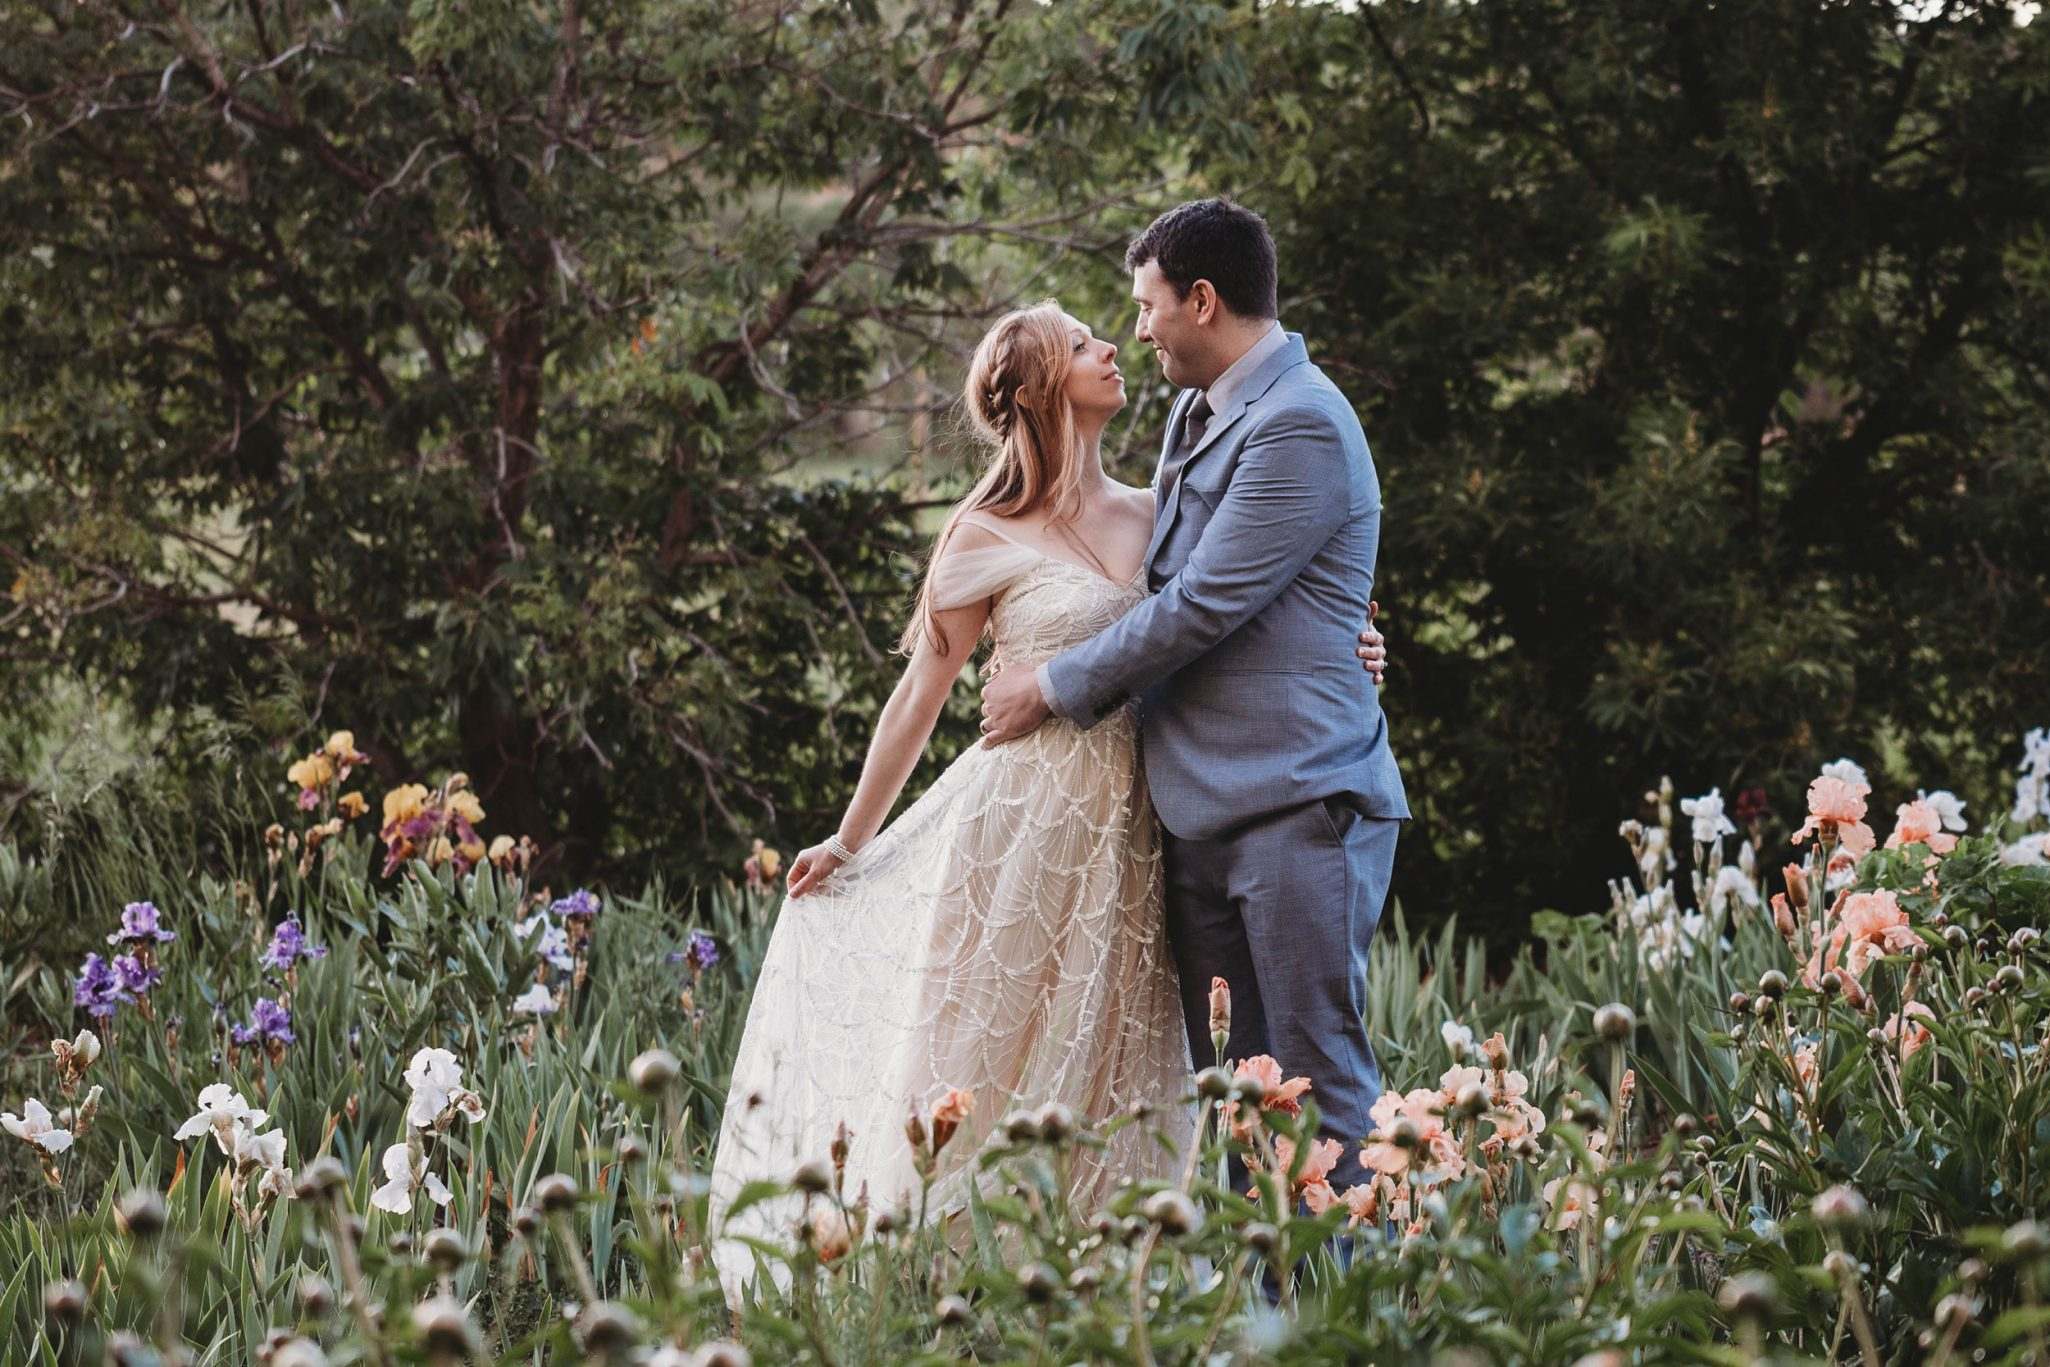 Bride & Groom in iris field at Ridgewood Event Center, Durango CO